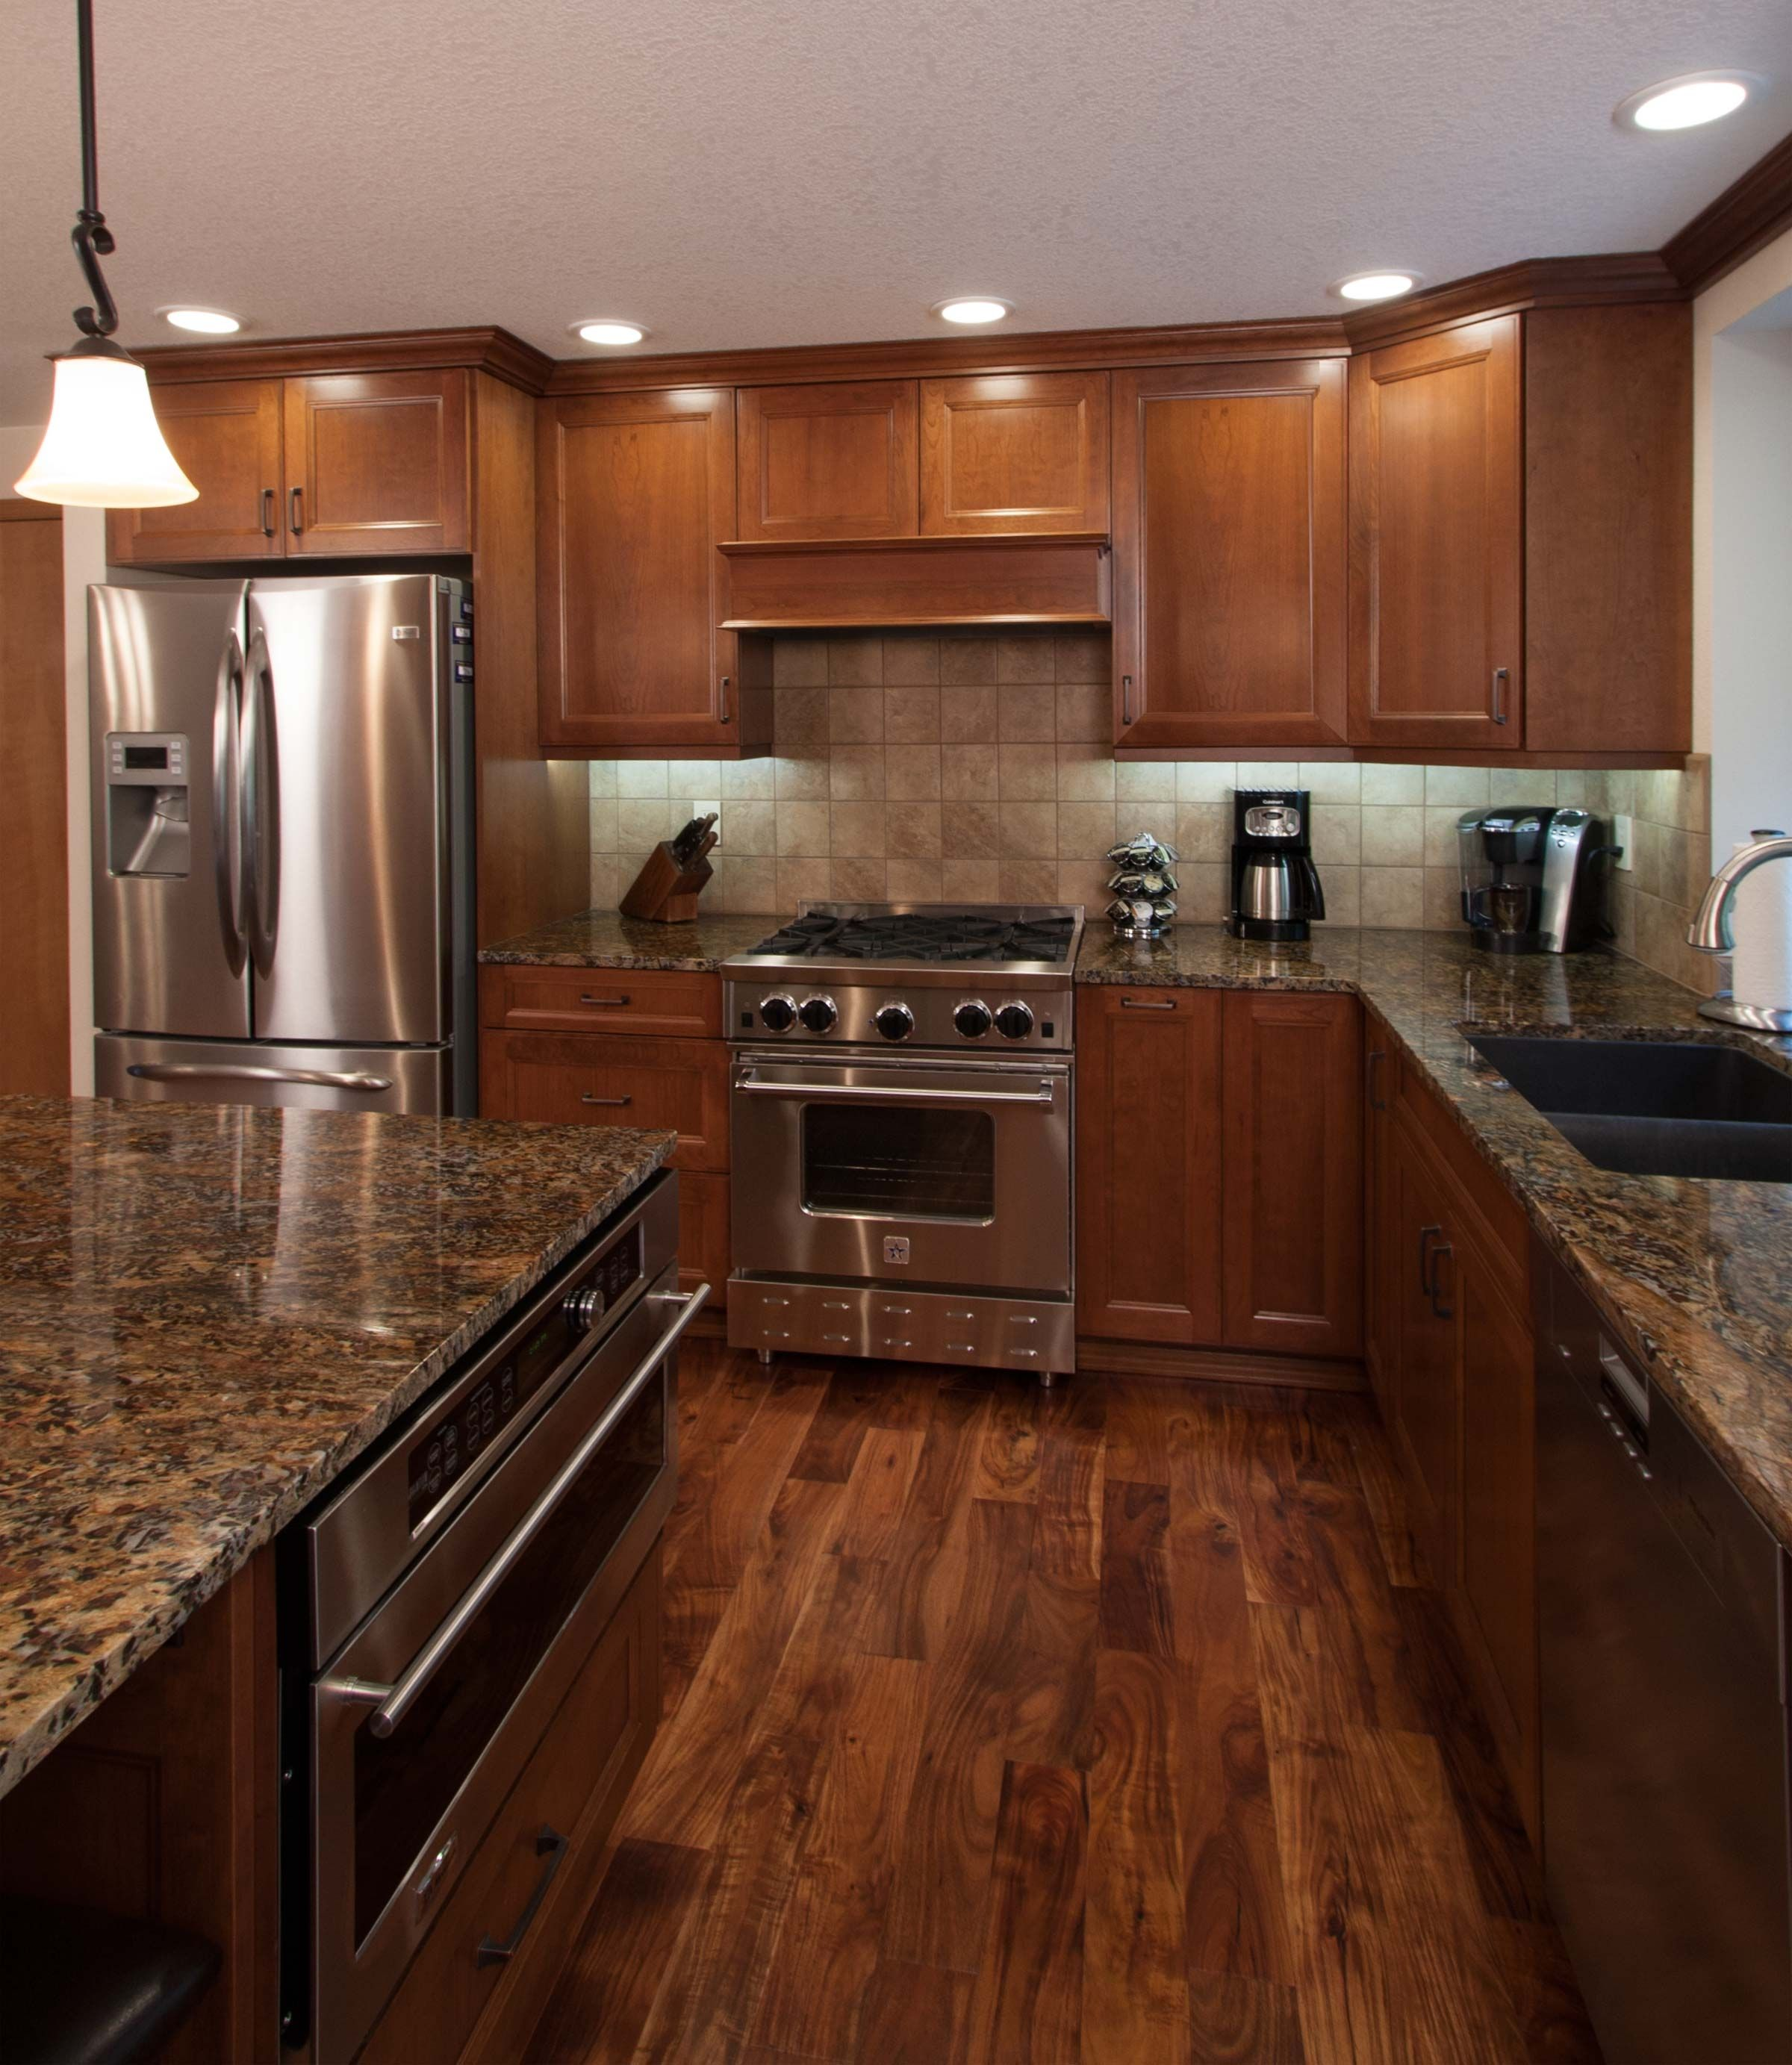 What Wood Is Best For Kitchen Cabinets: Kitchen Floor Ideas With Wood Cabinets Appealing Wood